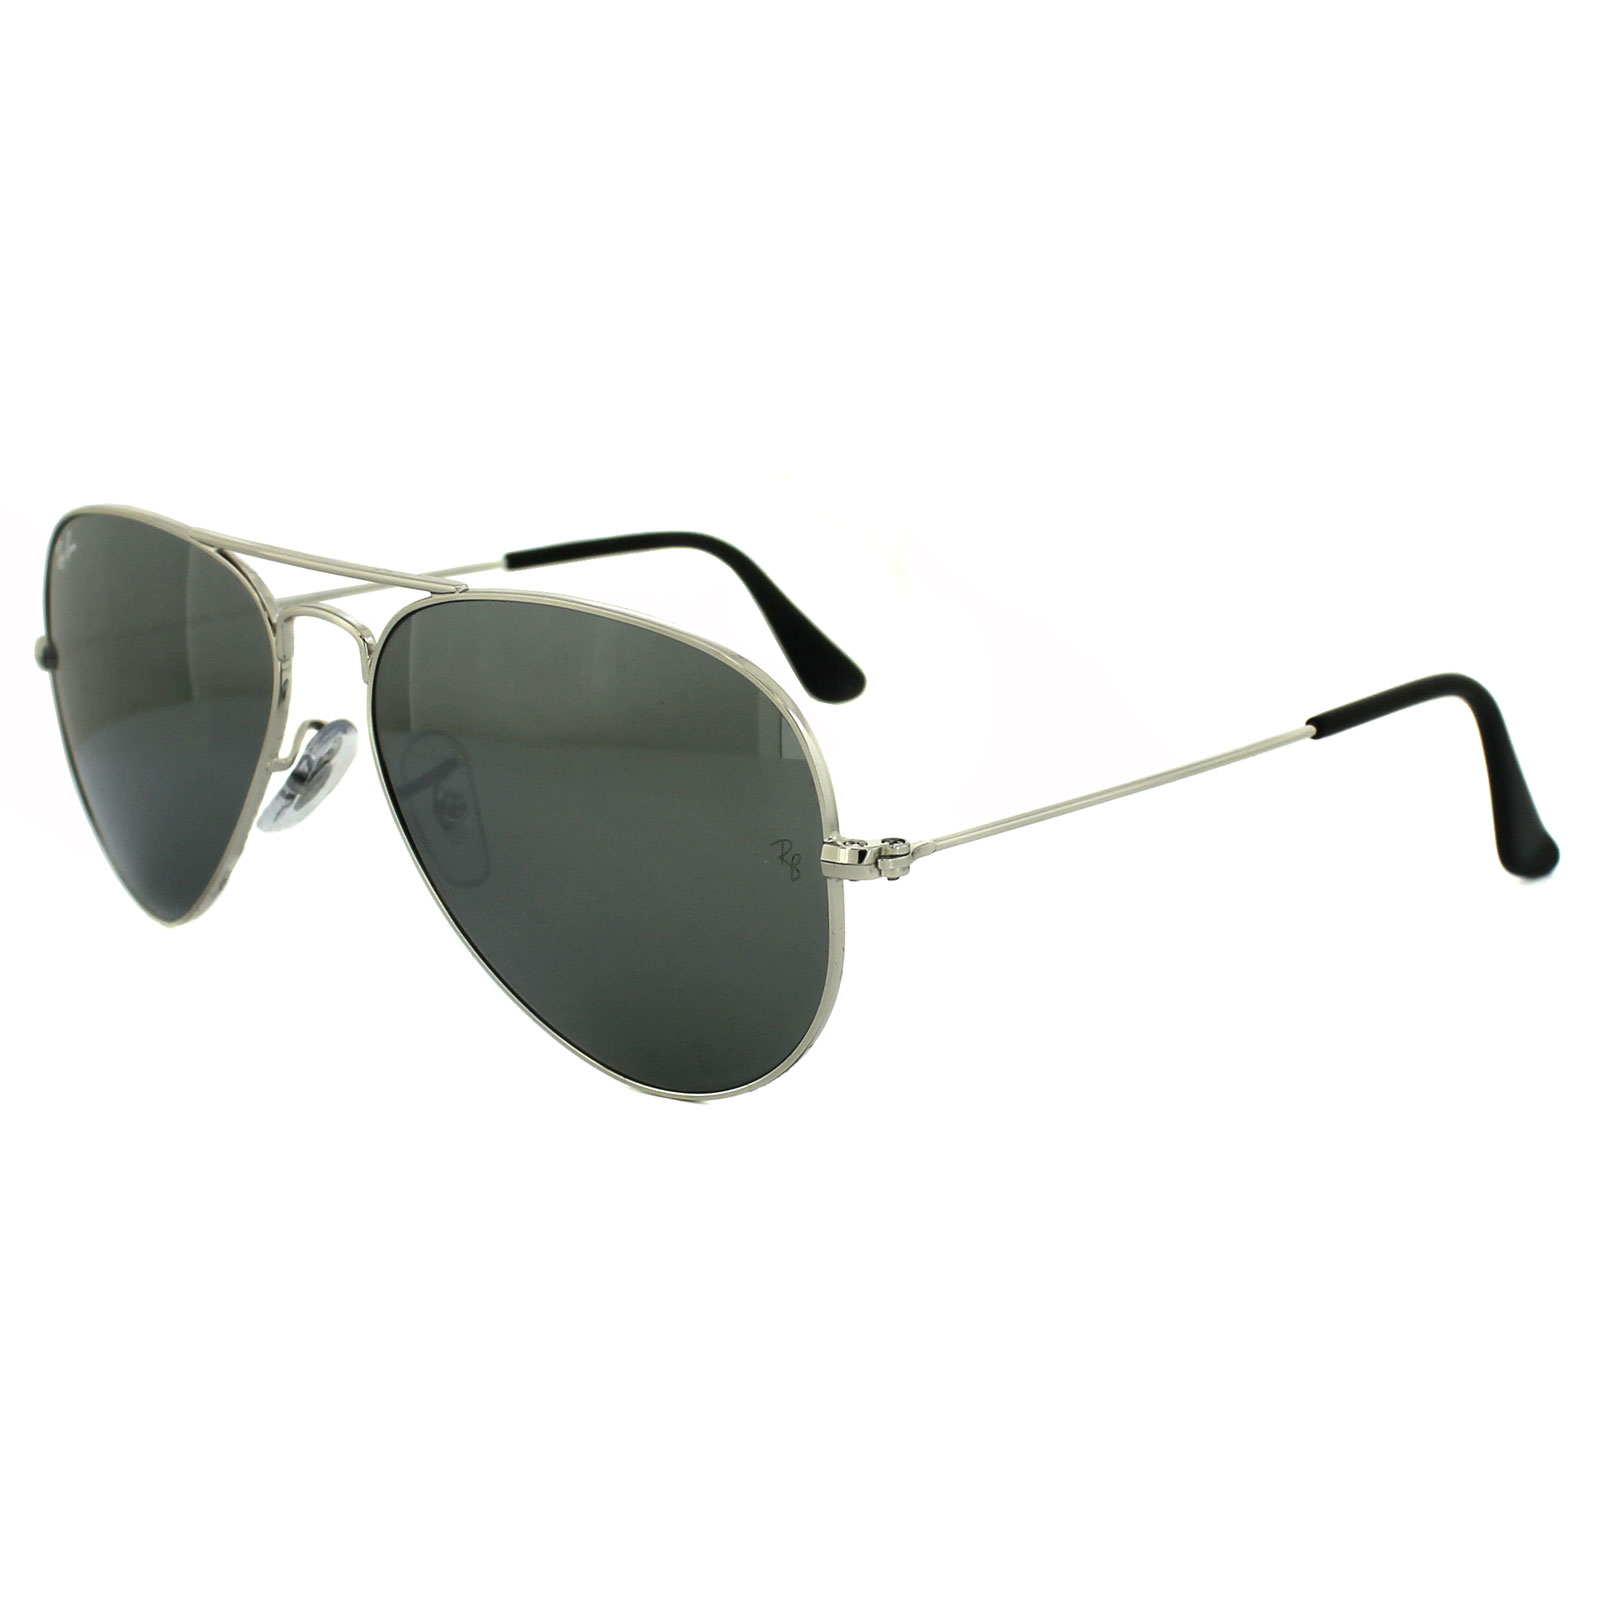 ray ban aviator 3025 price uk